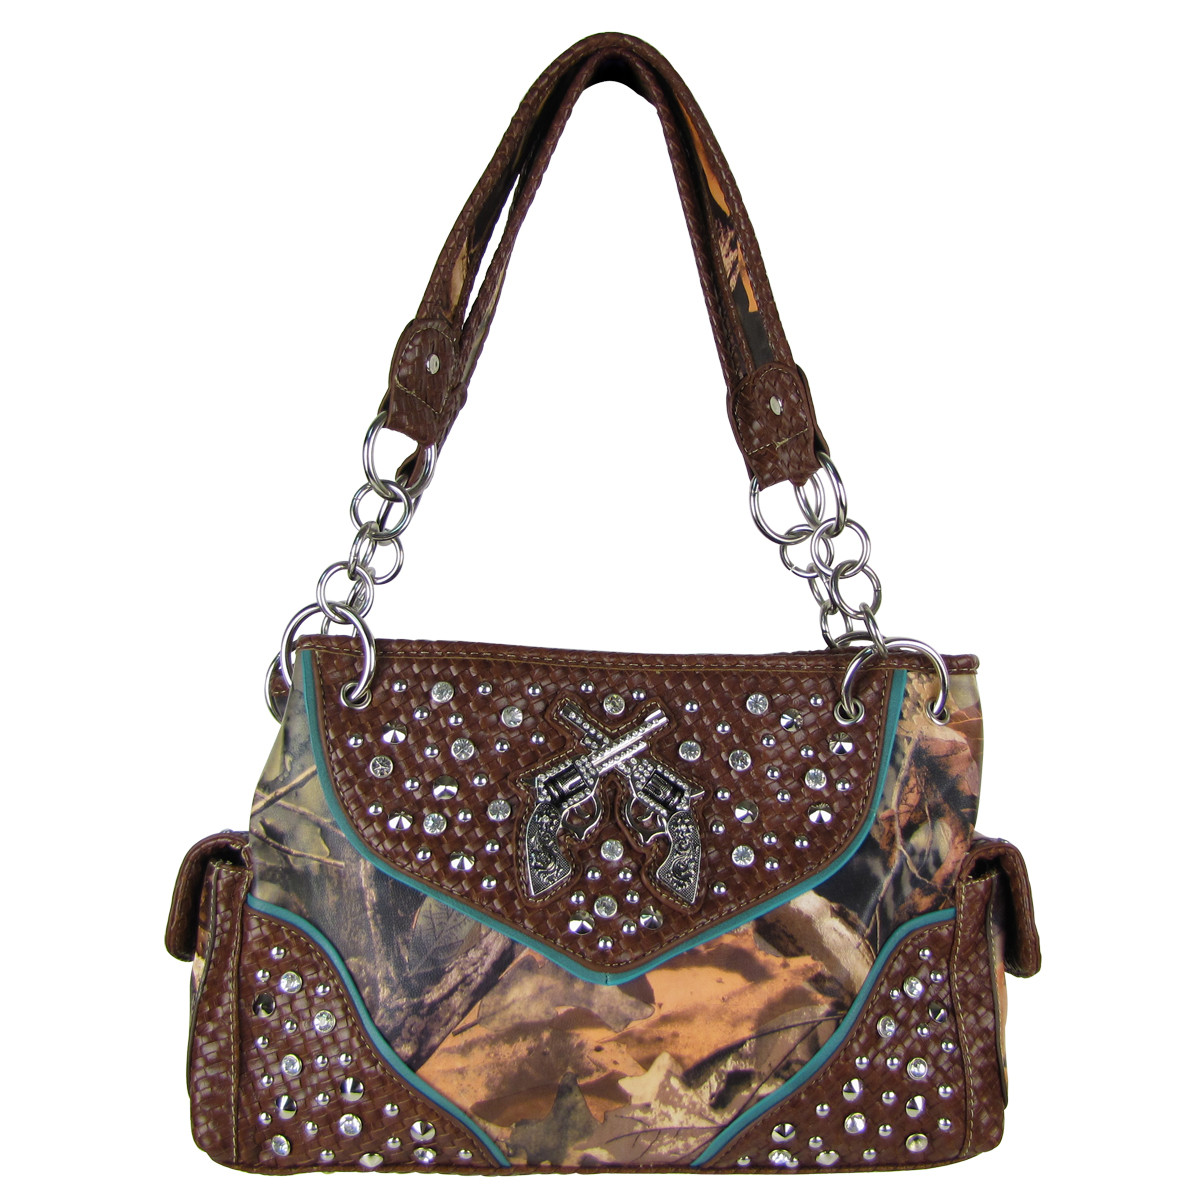 BROWN MOSSY CAMO STUDDED RHINESTONE PISTOL LOOK SHOULDER HANDBAG HB1-12860BRN